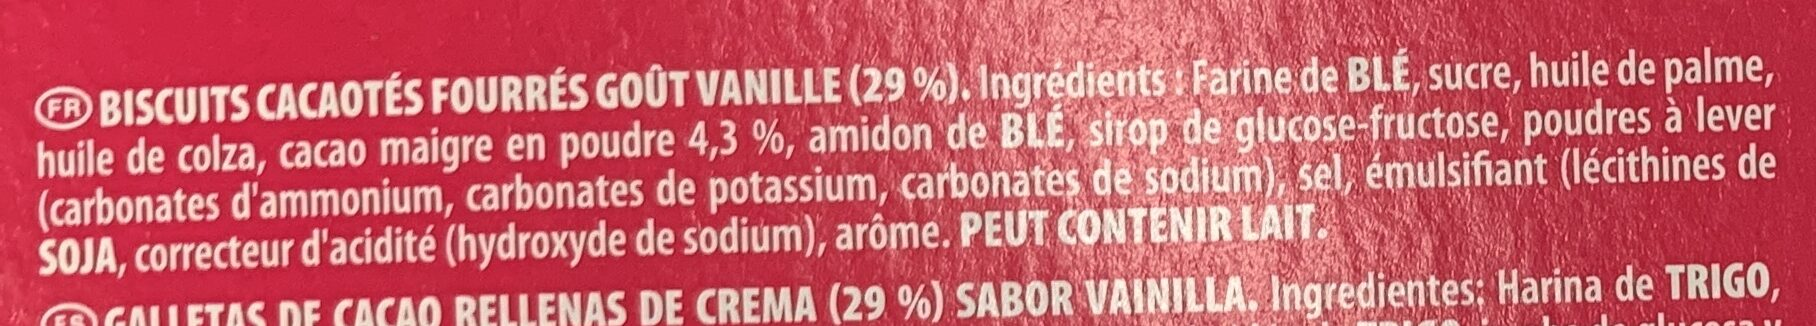 Oreo Original - Ingredients - fr